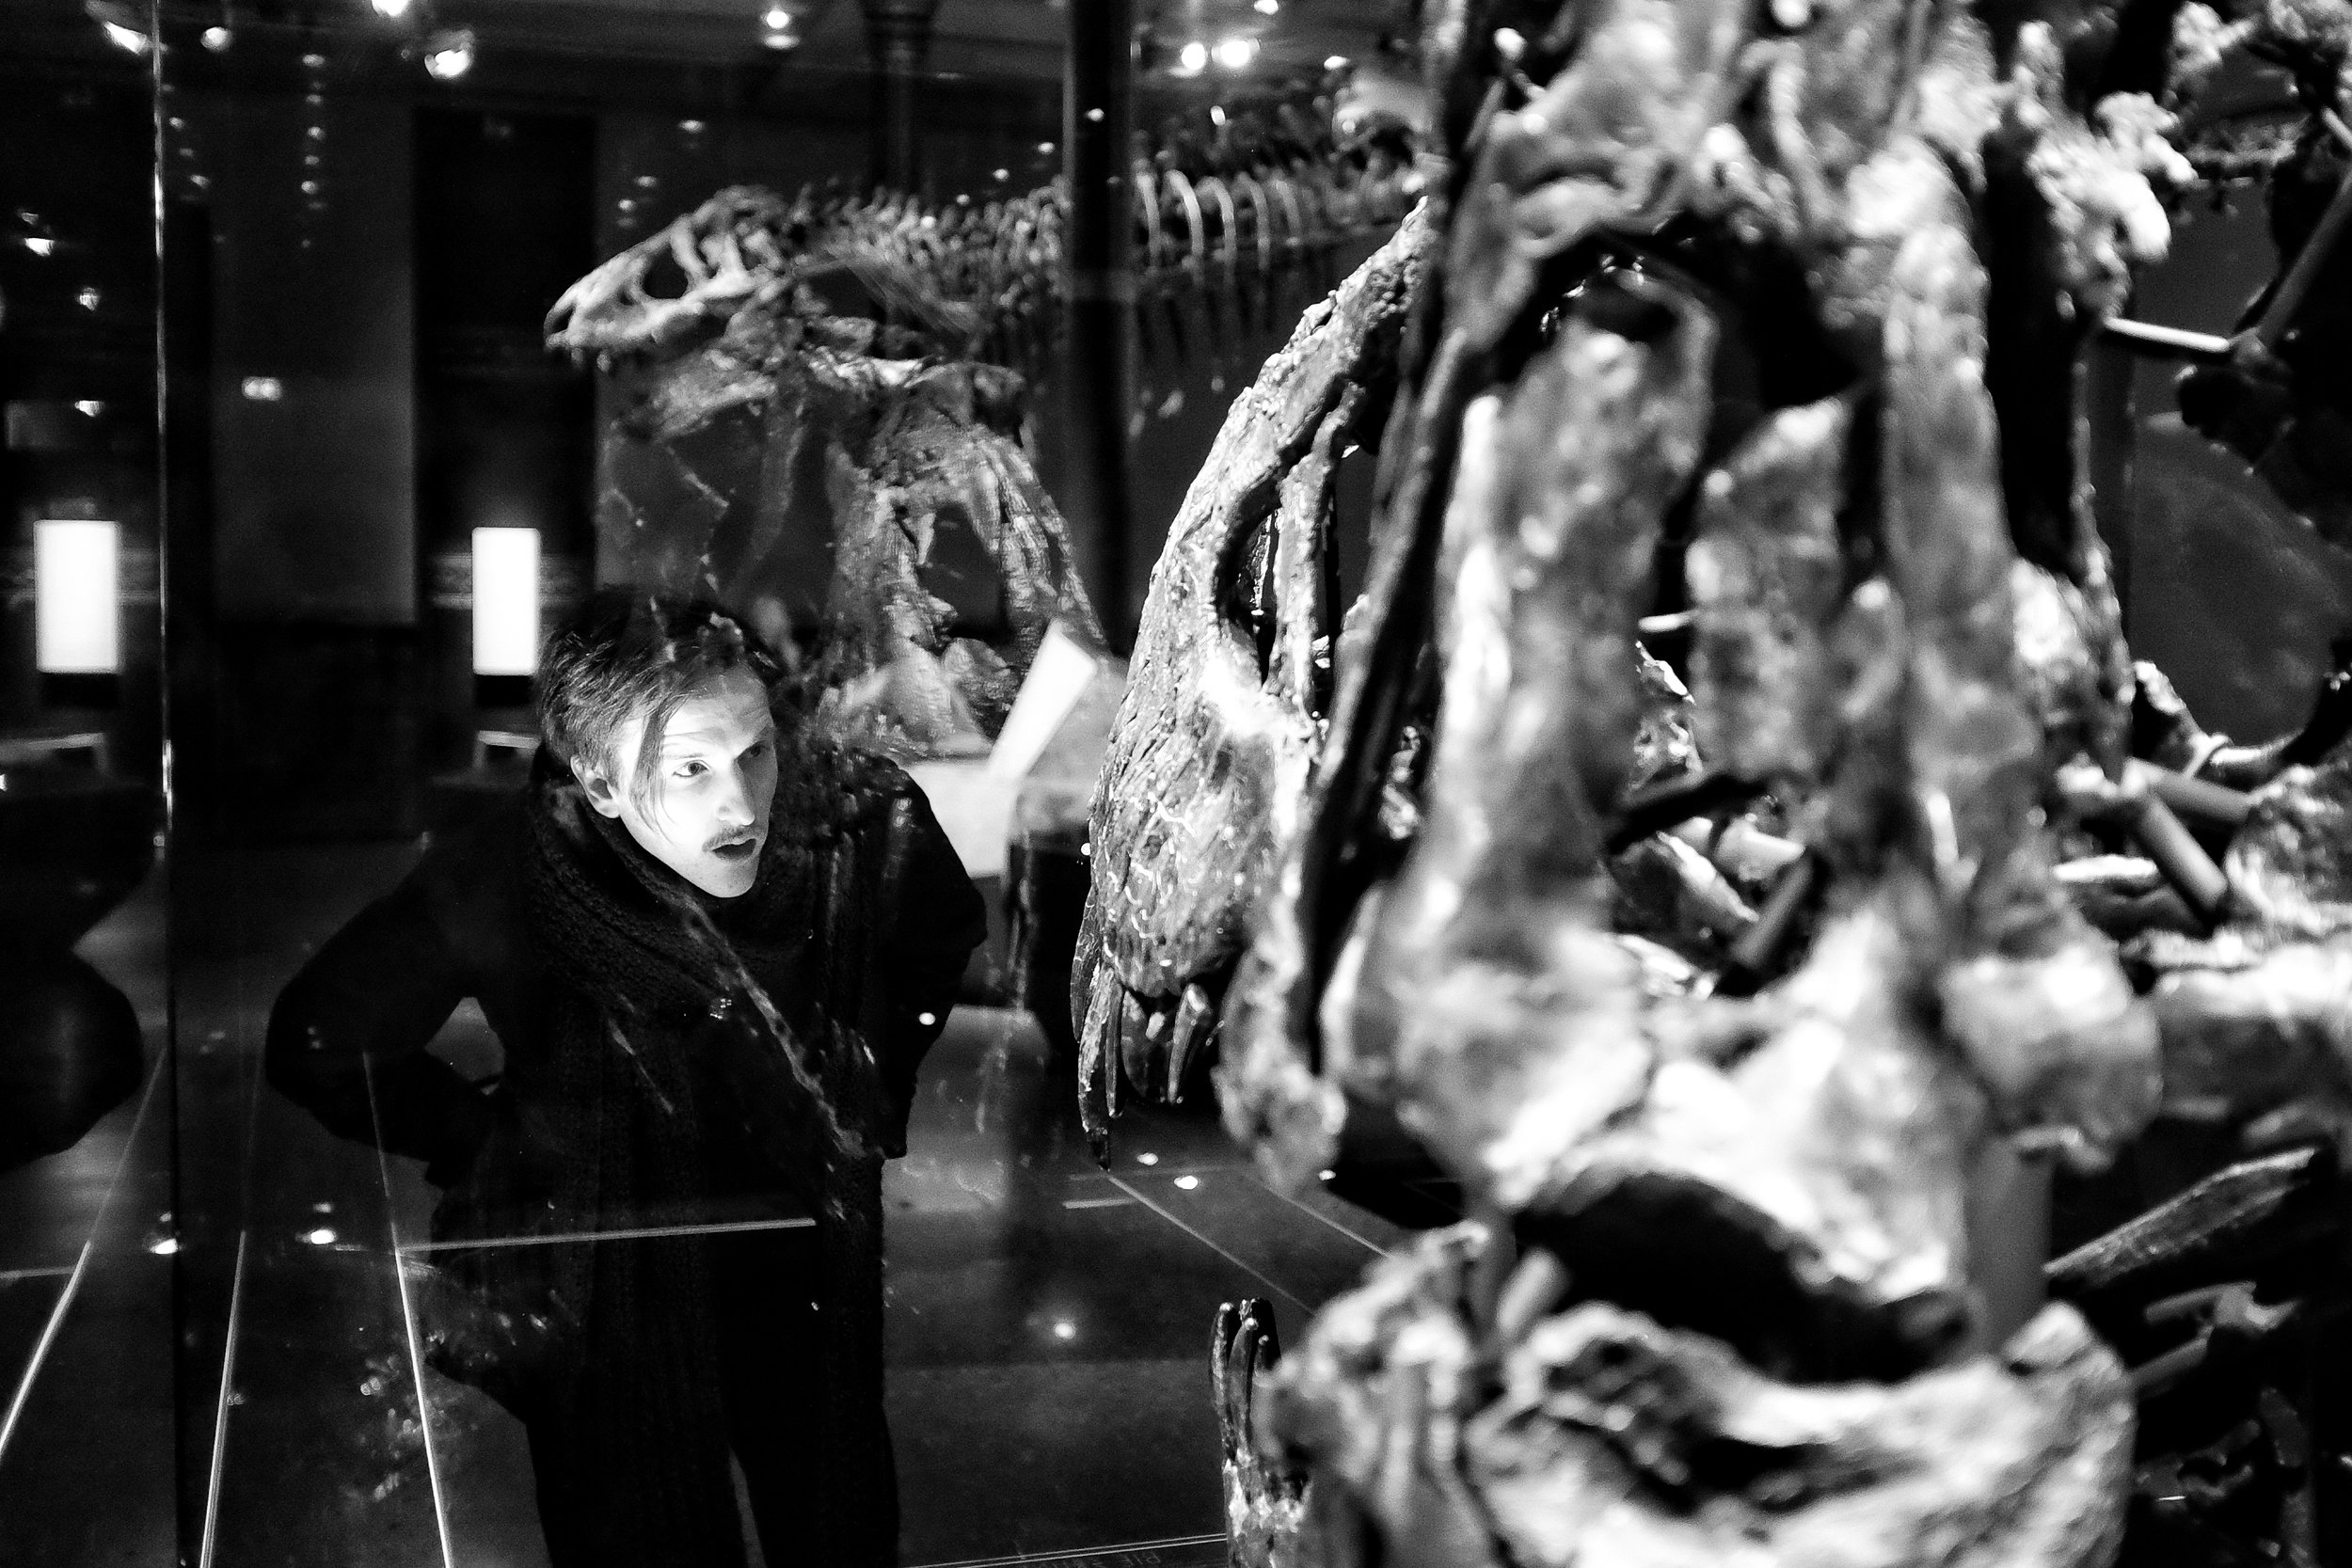 Tristan Otto, the museum's Tyrannosaurus Rex, has his real skull displayed separately, as it was too heavy to mount.